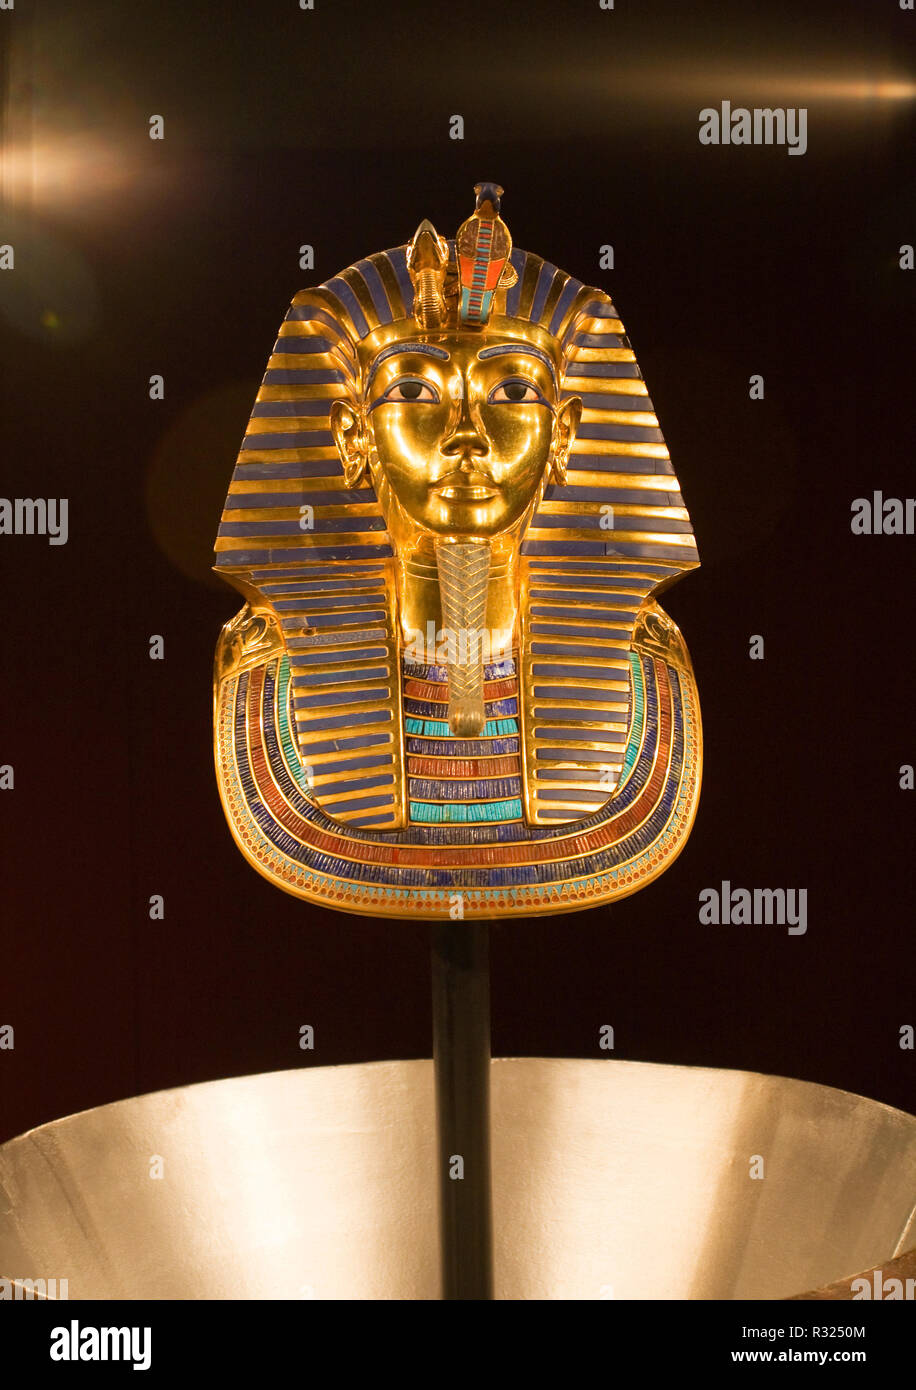 Made of solid gold lapiz, and precious gems, the death mask of King Tutankhamun, or King tut, on display at an American museum. - Stock Image